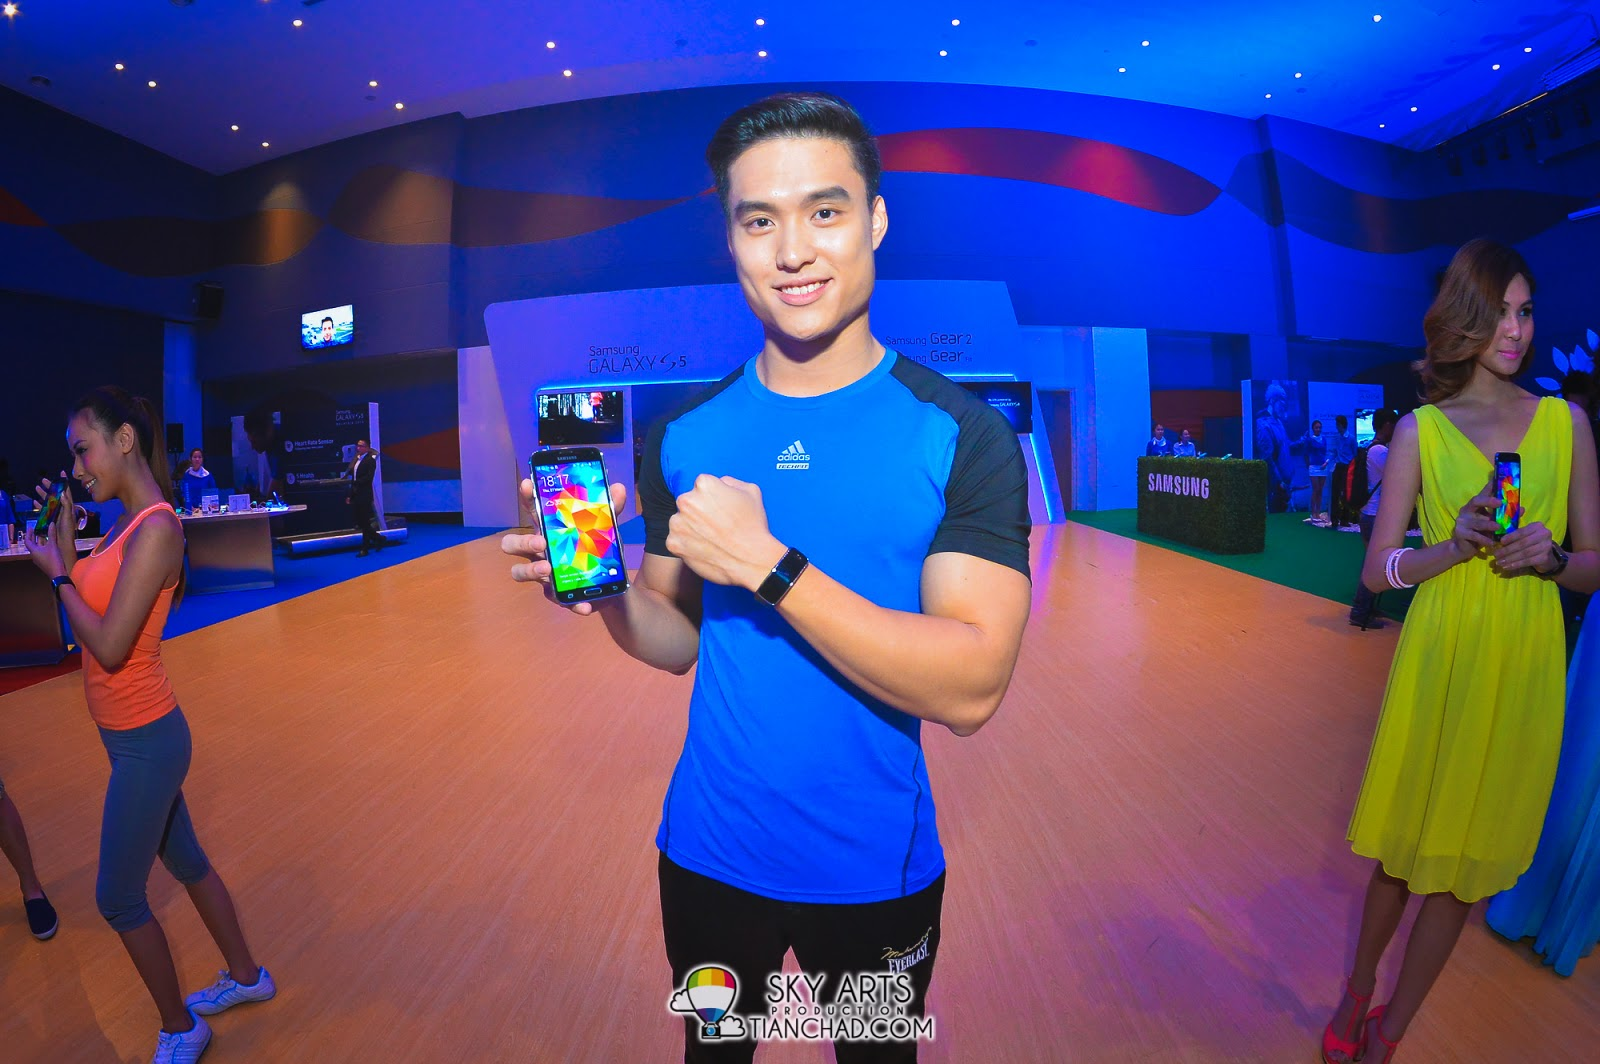 A model showcasing the brand new Samsung GALAXY S5 and Samsung Gear Fit